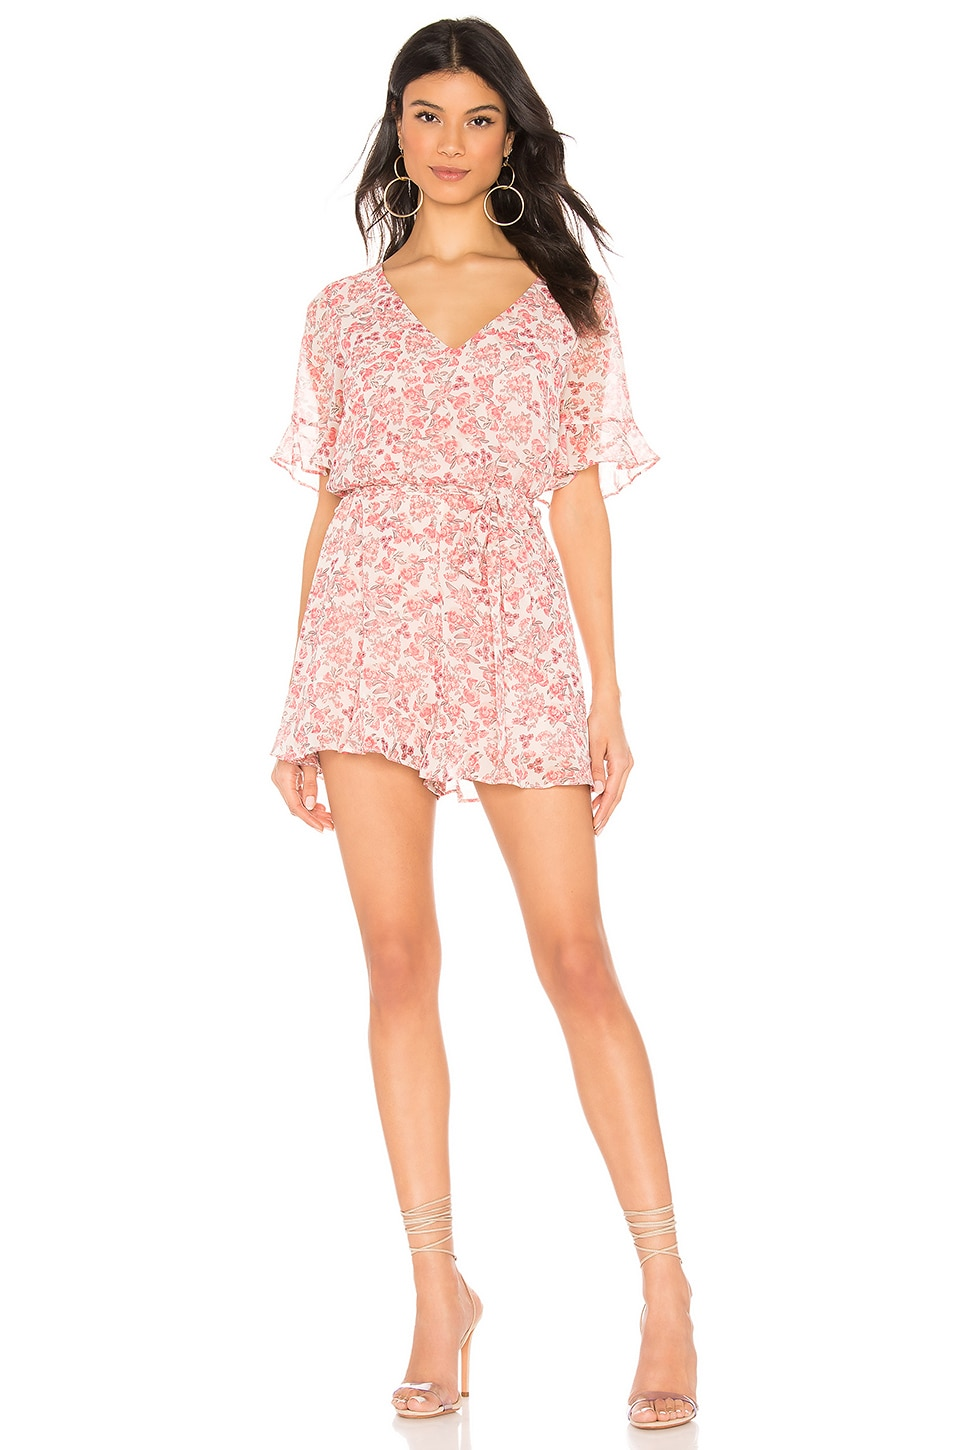 BB Dakota Picking Roses Romper in Dusty Rose